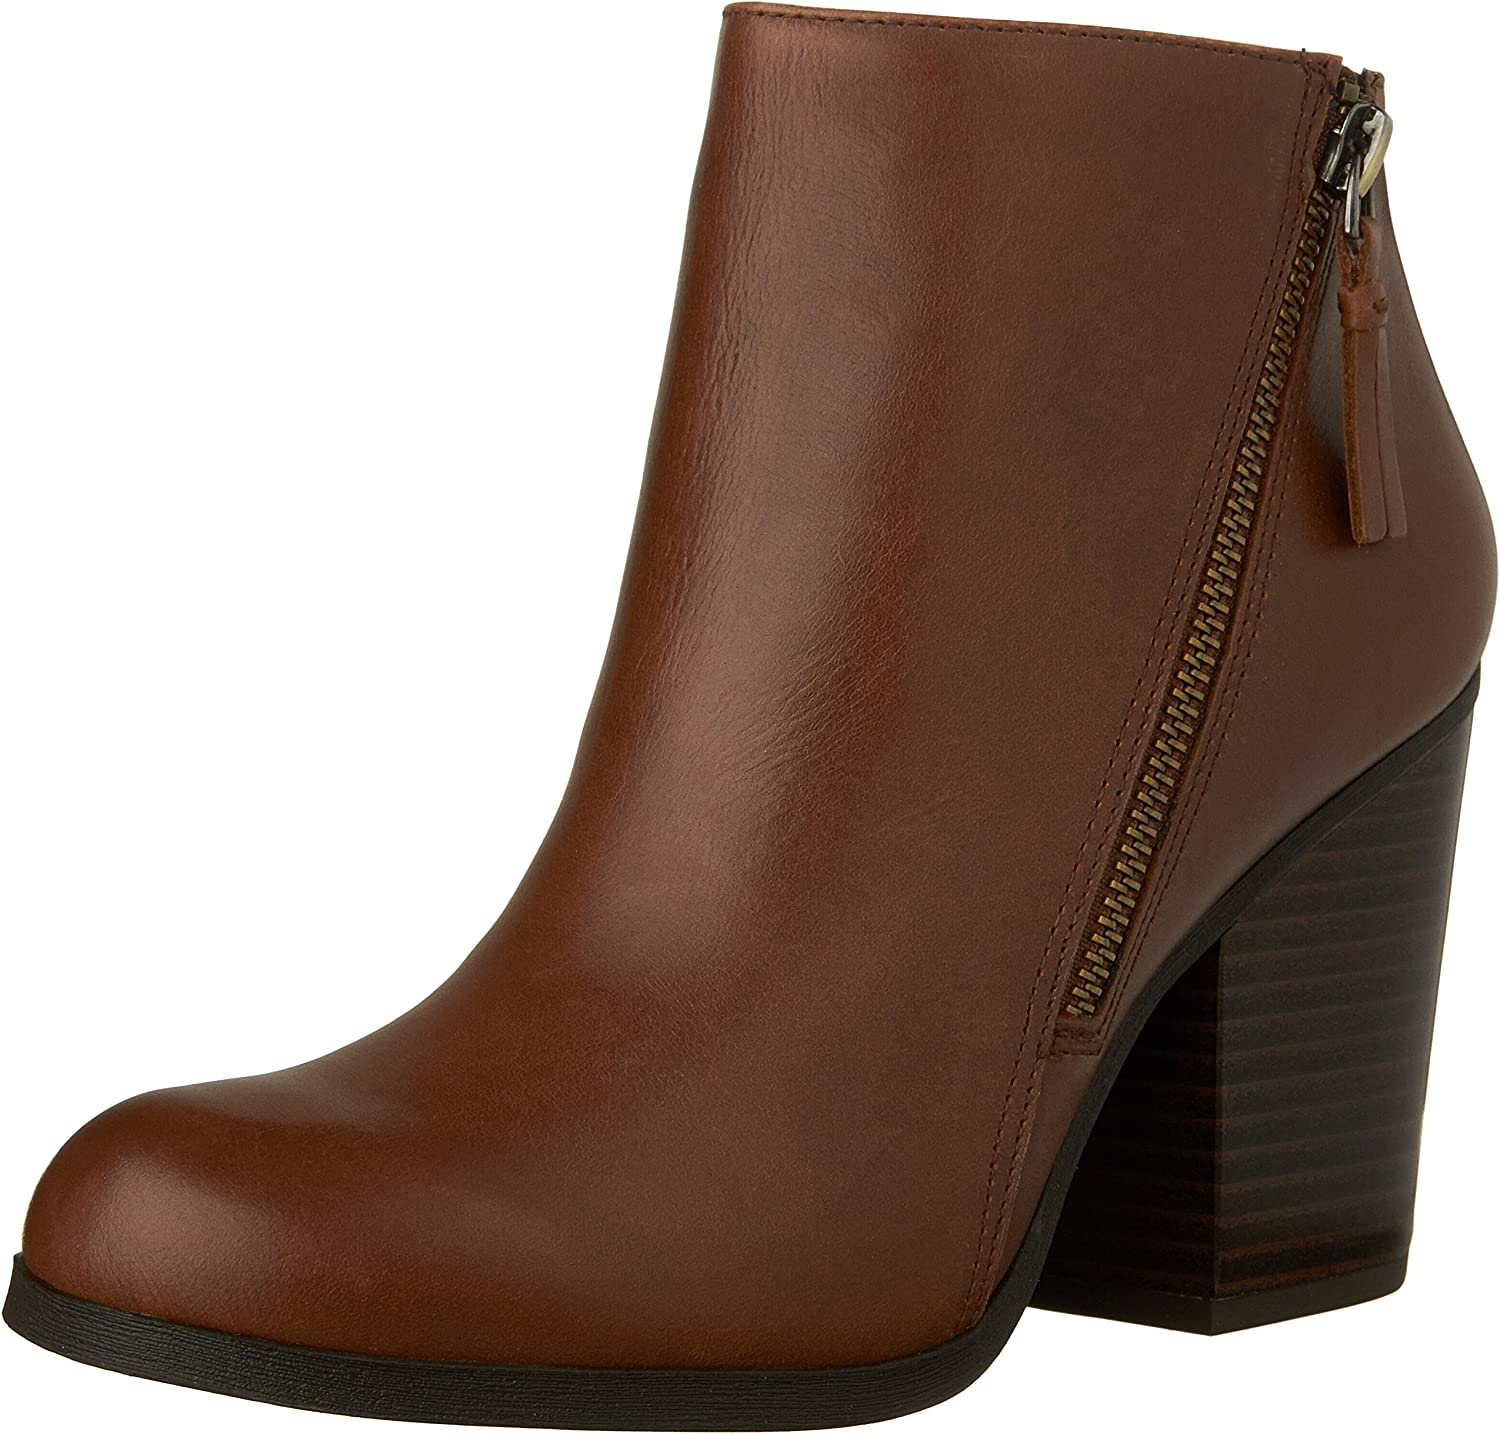 Kenneth Cole REACTION Women's Might Win Ankle Bootie